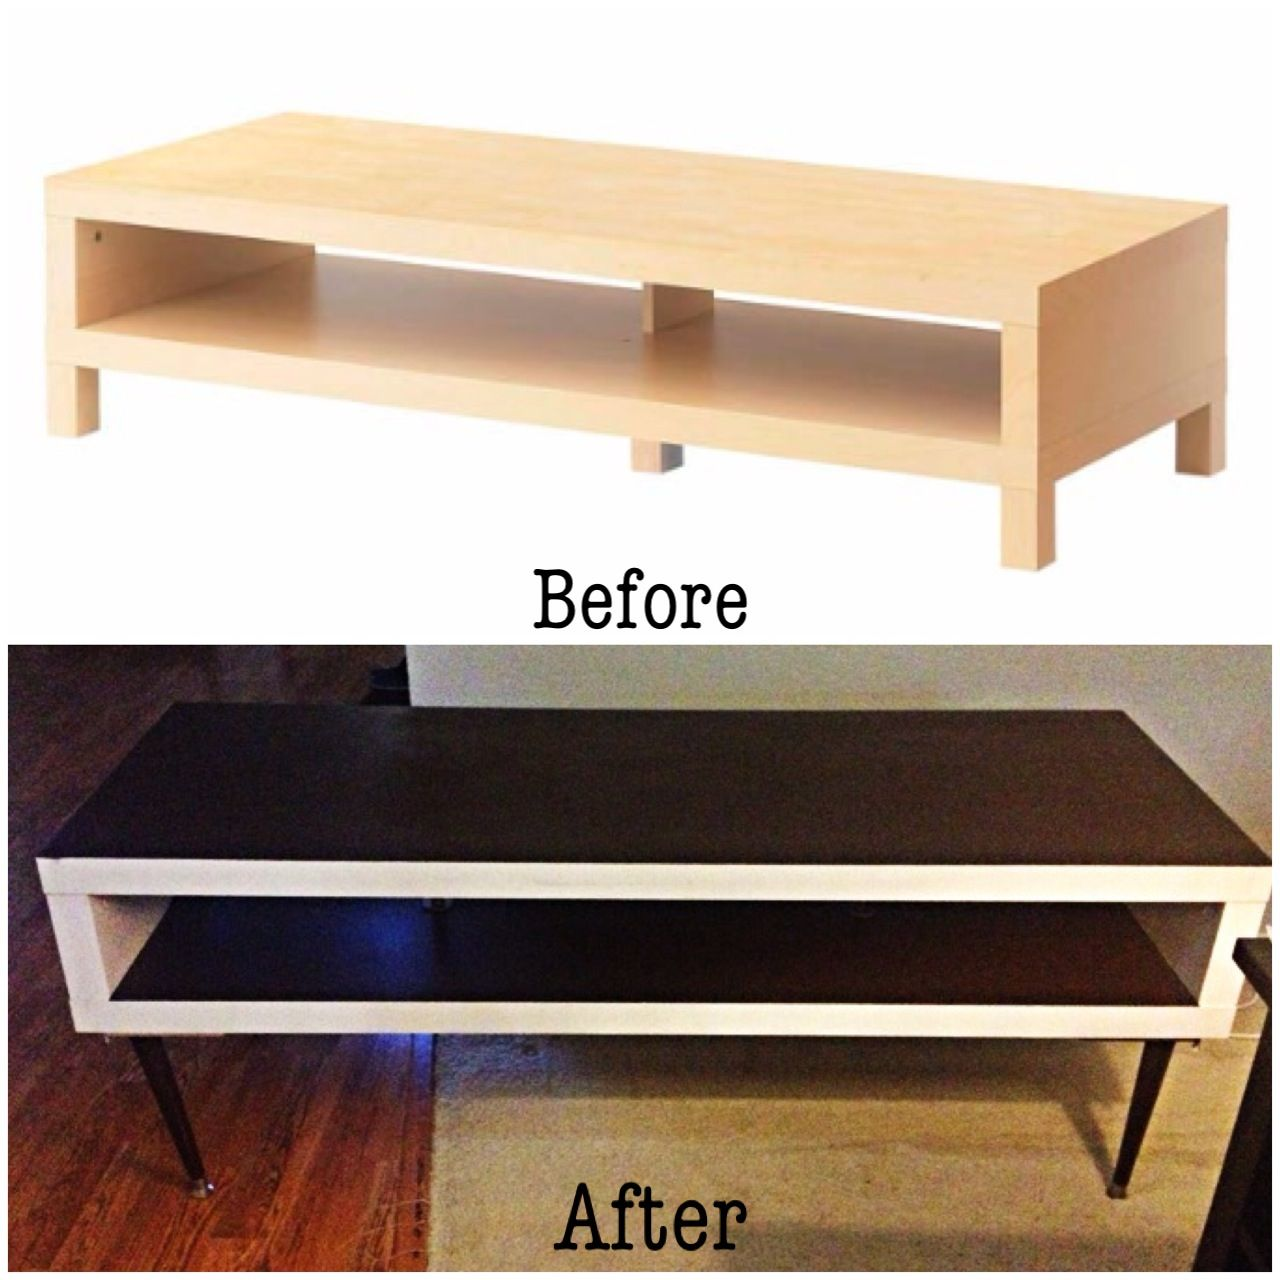 Diy Ikea Hack Lack Tv Stand To Mid Century Inspired Diy Ikea